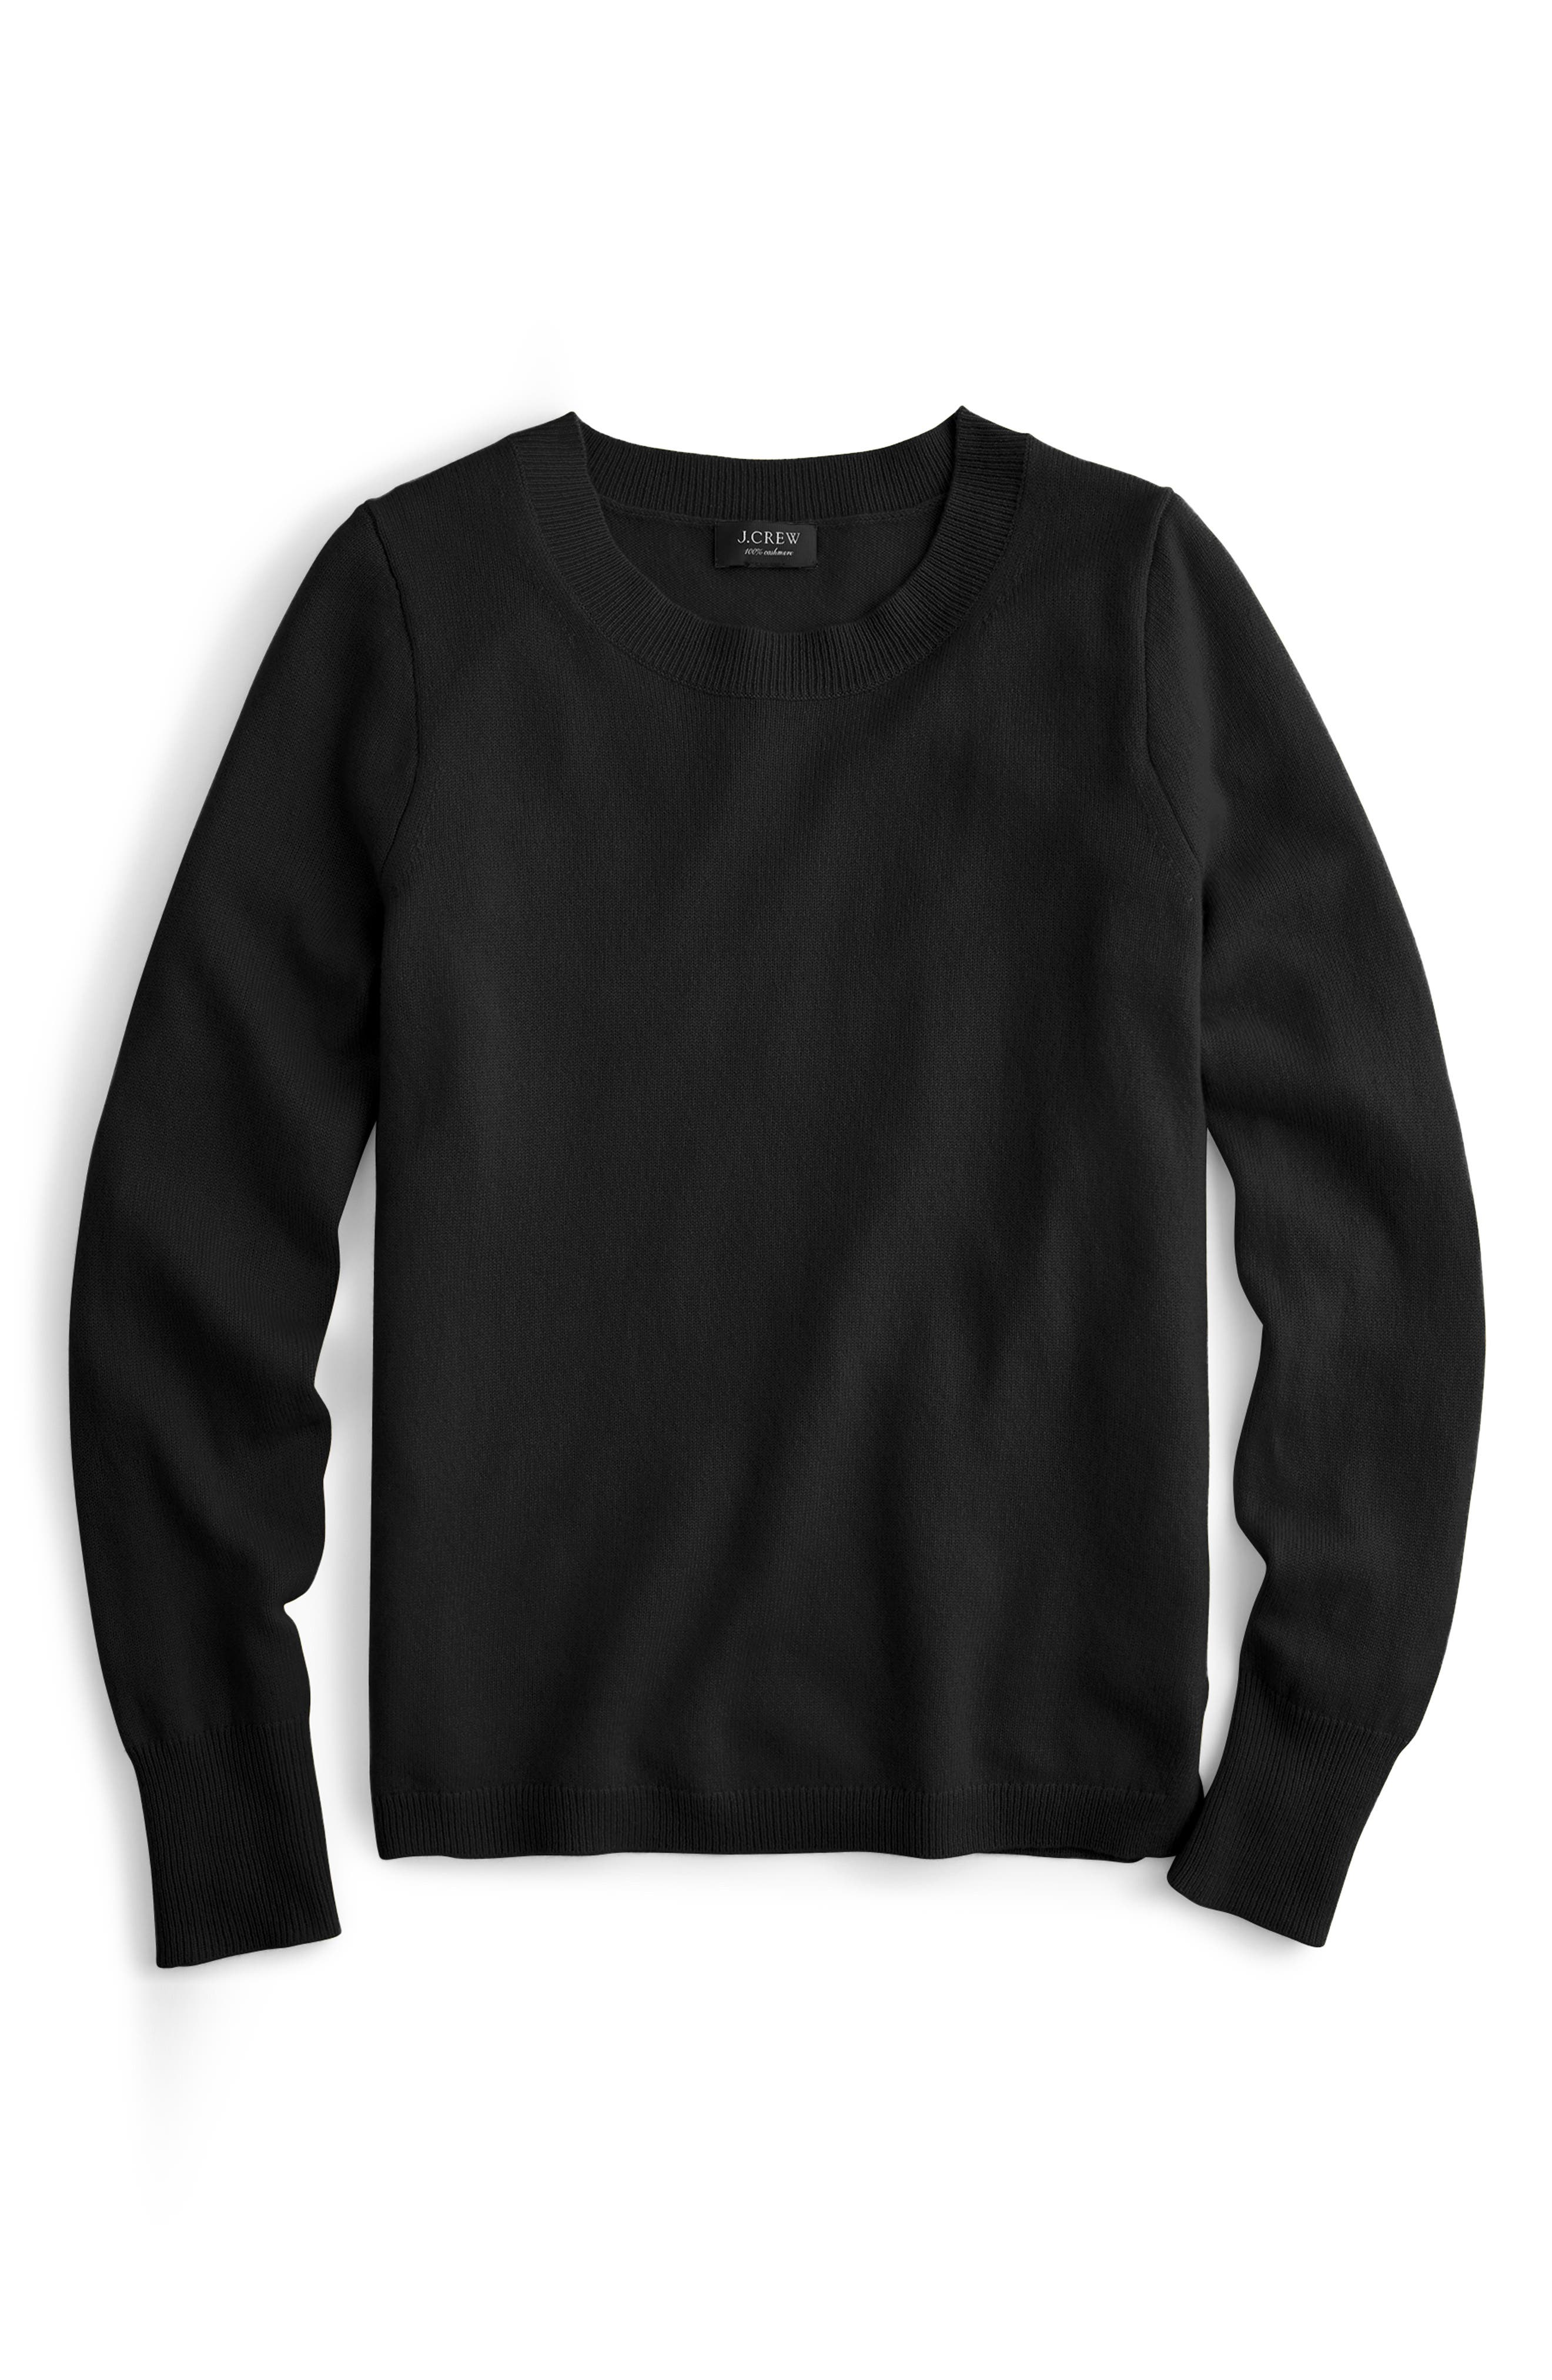 J.CREW,                             Crewneck Cashmere Sweater,                             Alternate thumbnail 4, color,                             BLACK